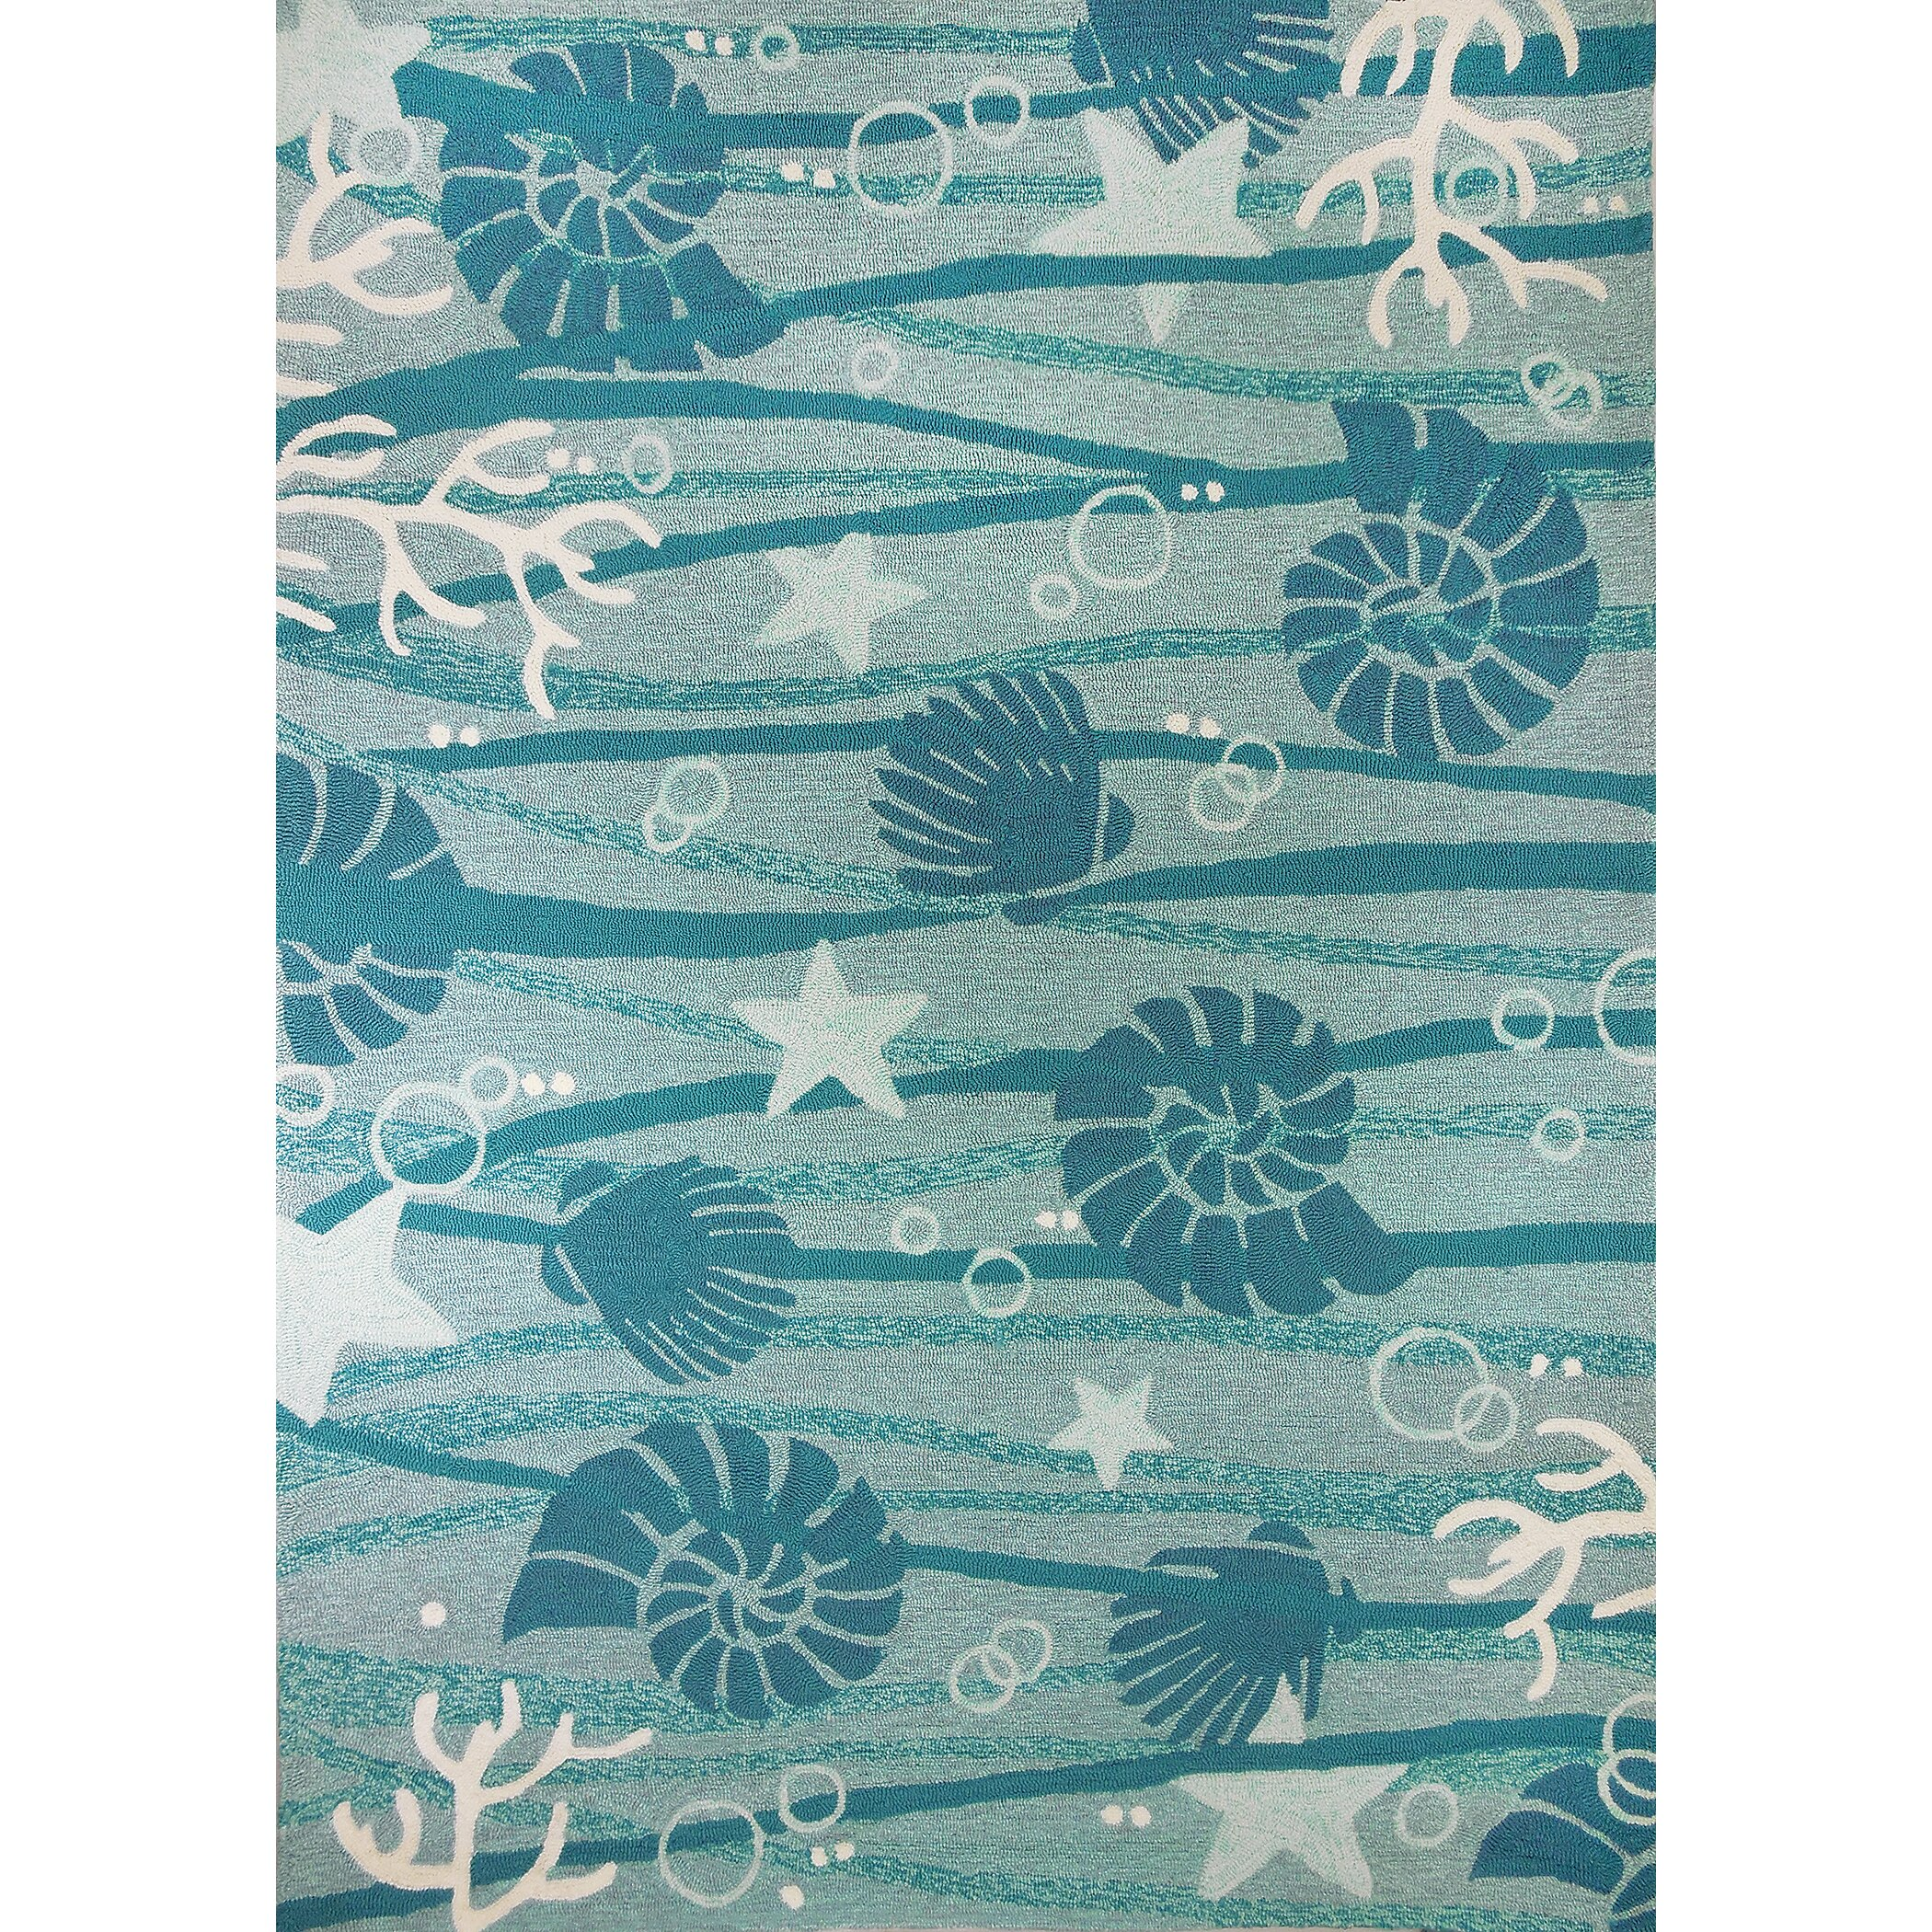 Homefires La Mer Turquoise White Indoor Outdoor Area Rug